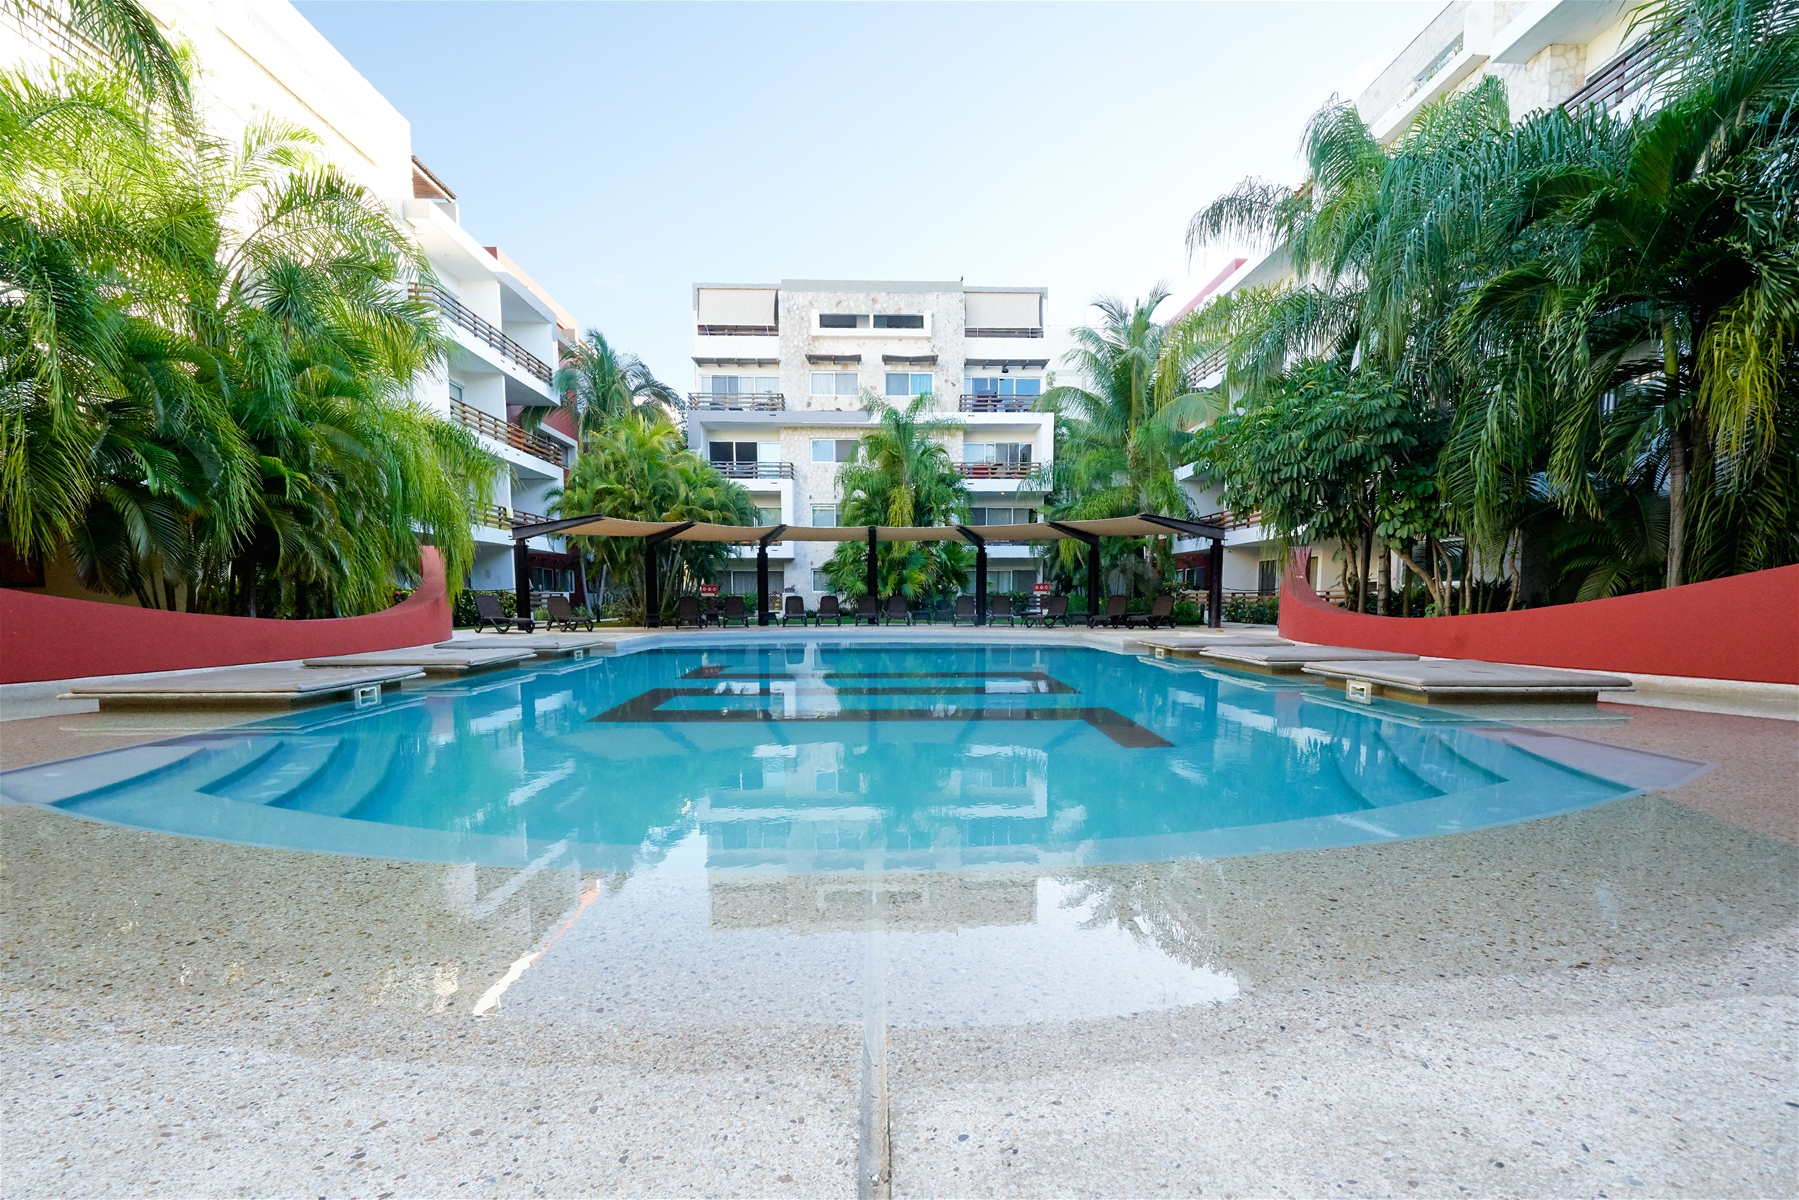 The Sabbia Condos common area pool with lounge chairs